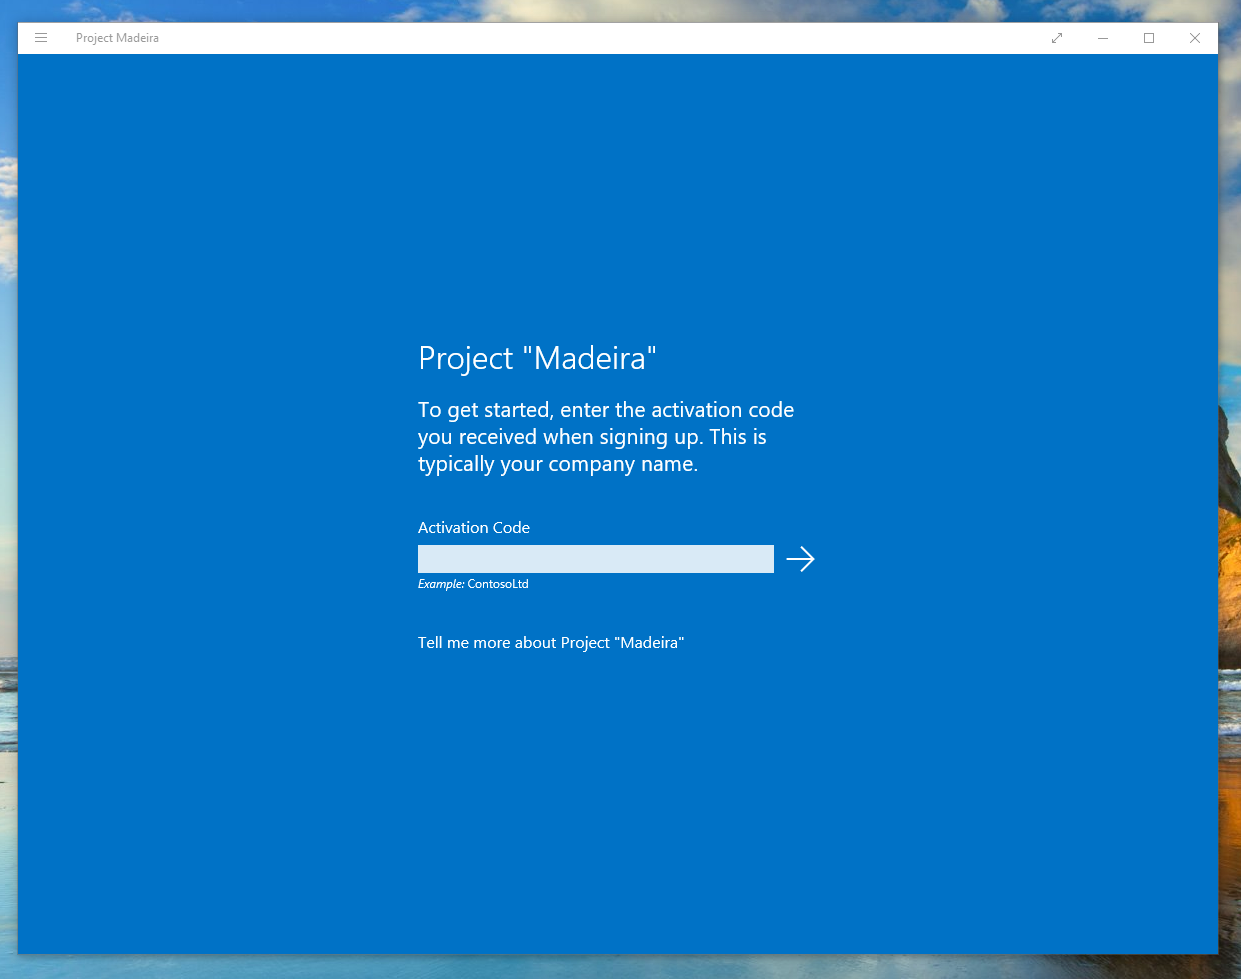 Business Management App Project Maderia Gets Windows 10 App